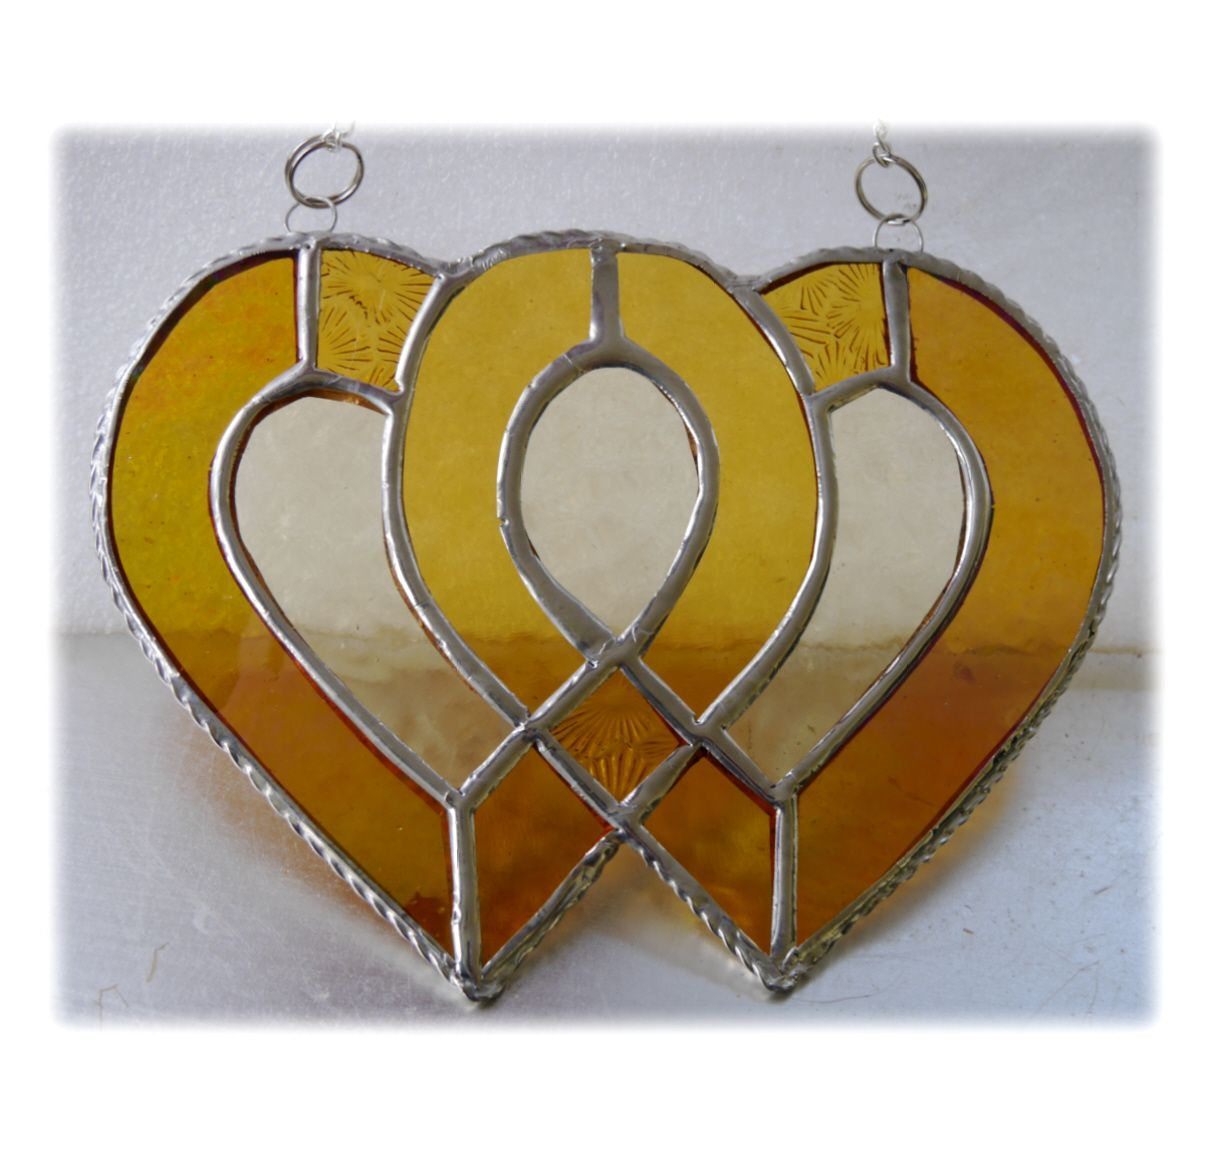 Entwined Heart 016 Gold #1909 FREE 22.50